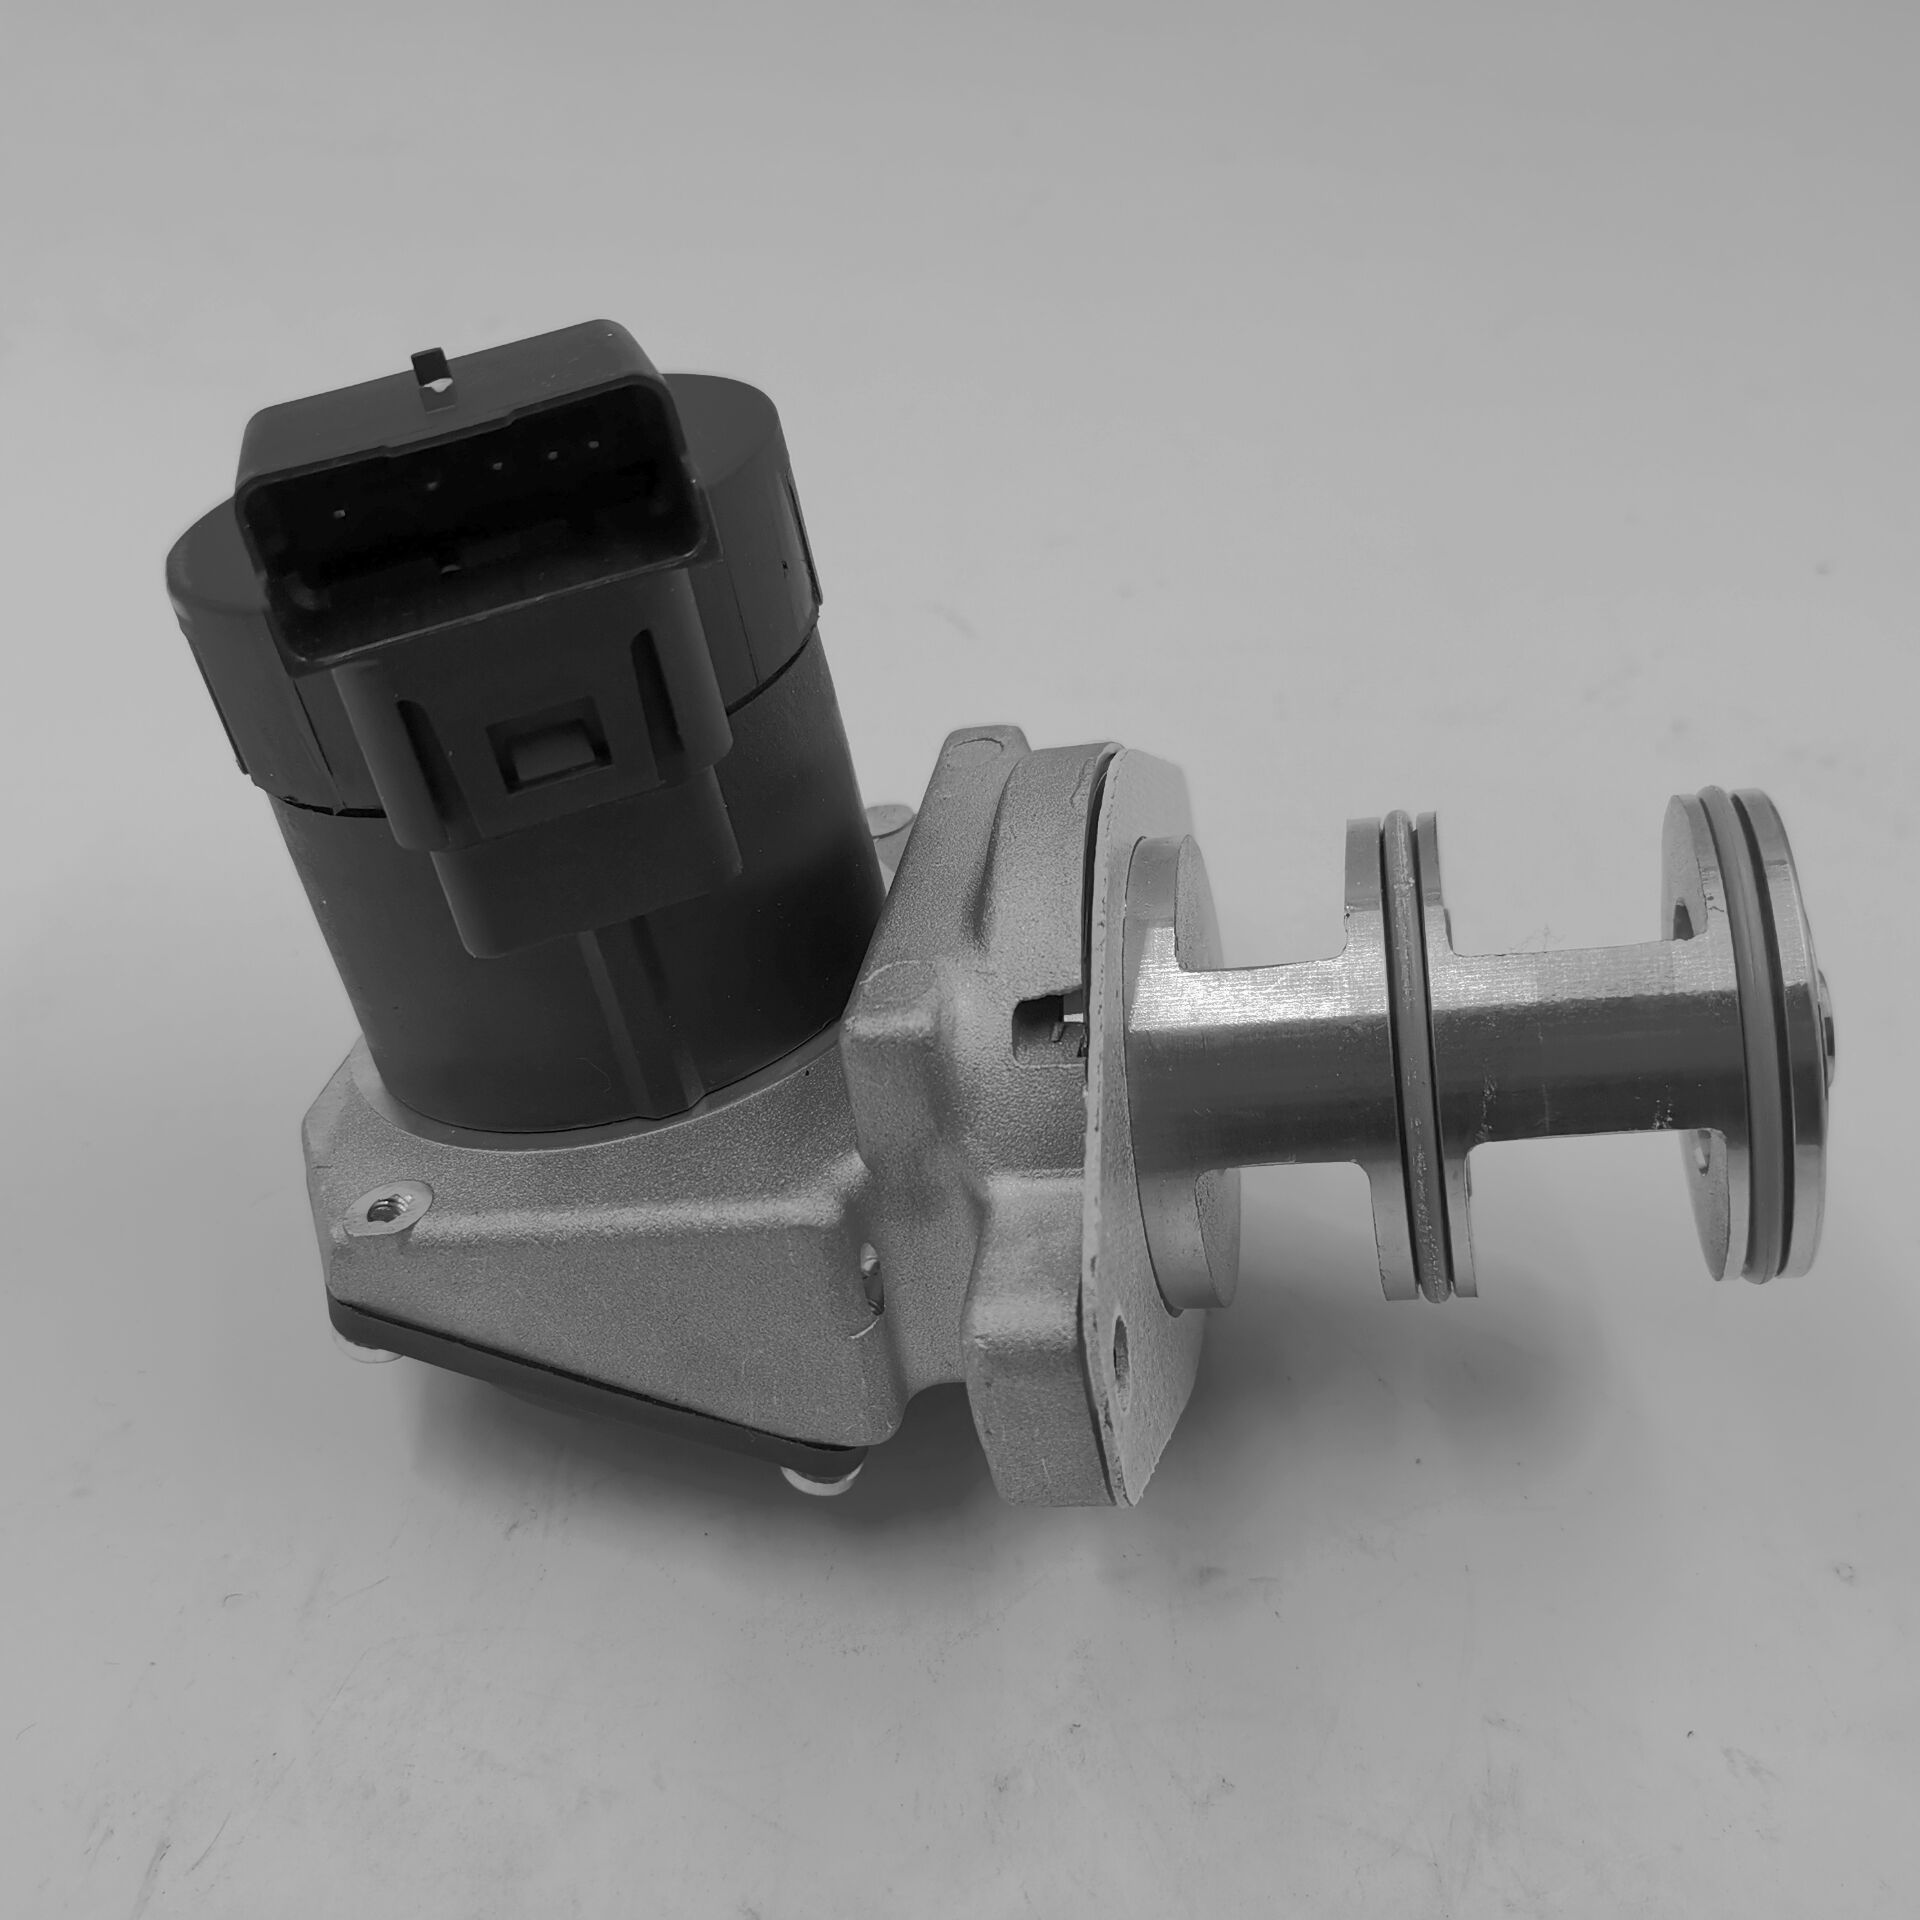 EGR VALVE RE537143 RE541426 FIT FOR JOHN DEERE